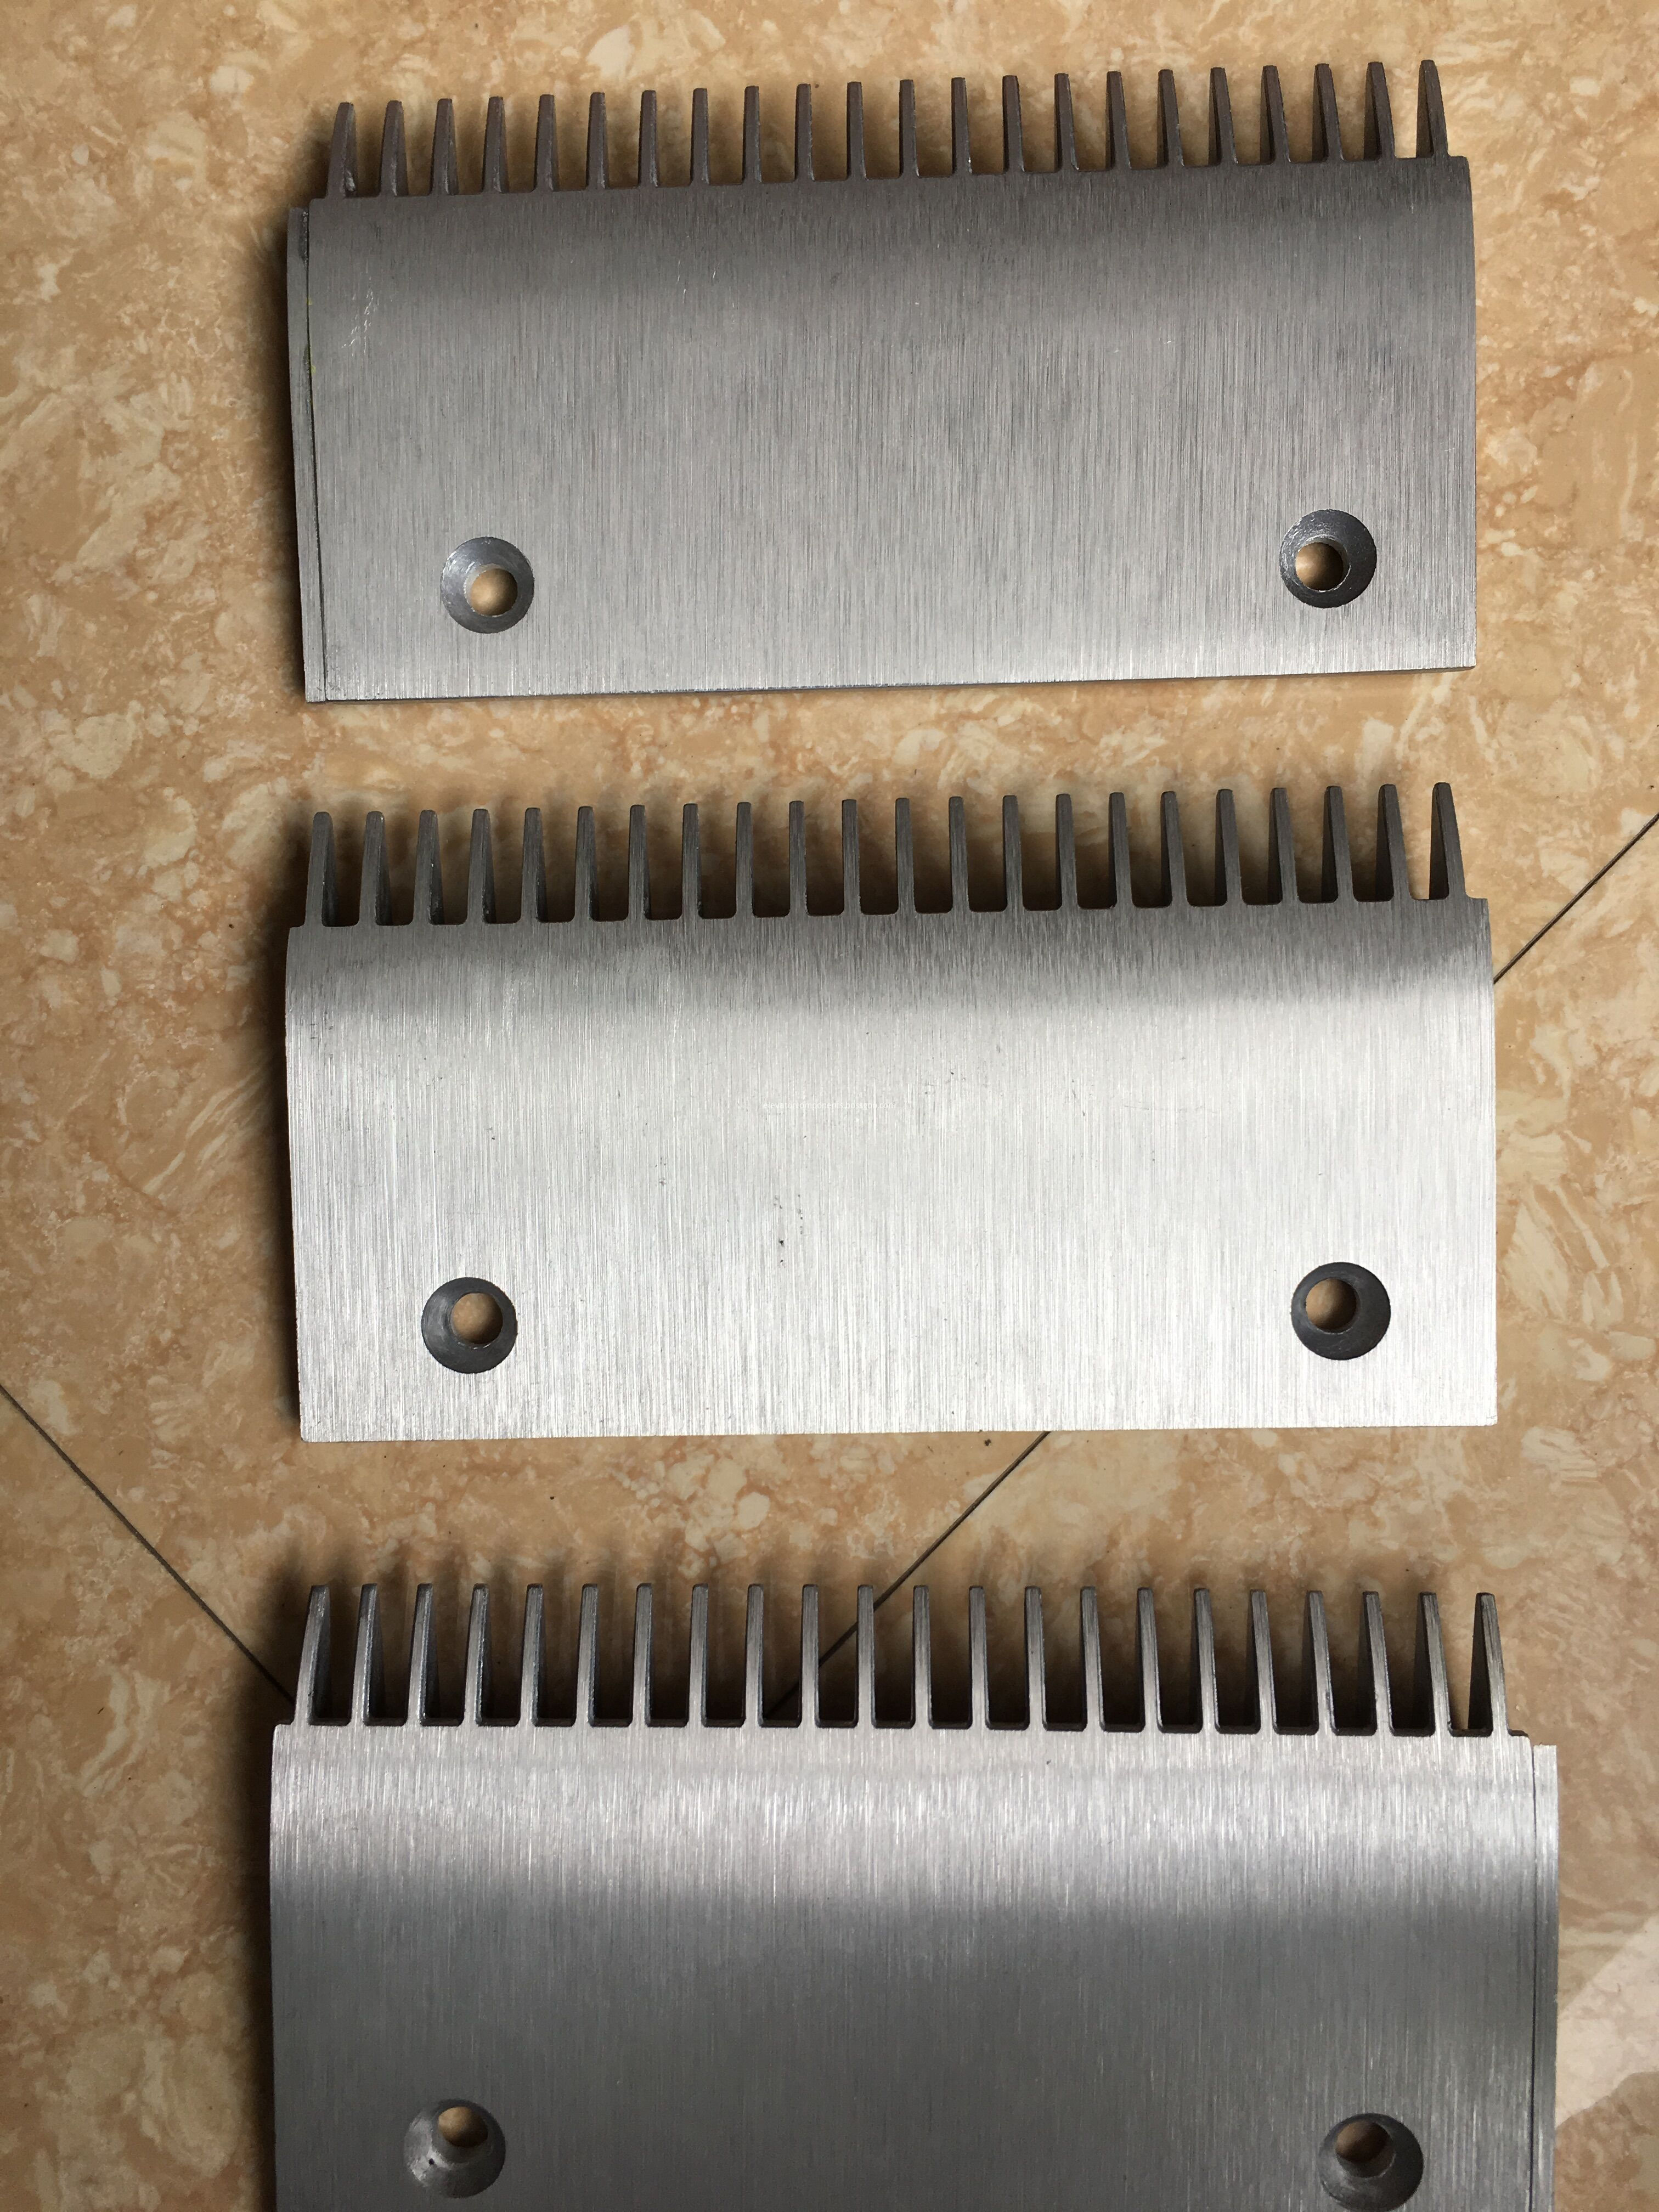 Aluminium Alloy Comb Plate for Schindler 9300 Escalators